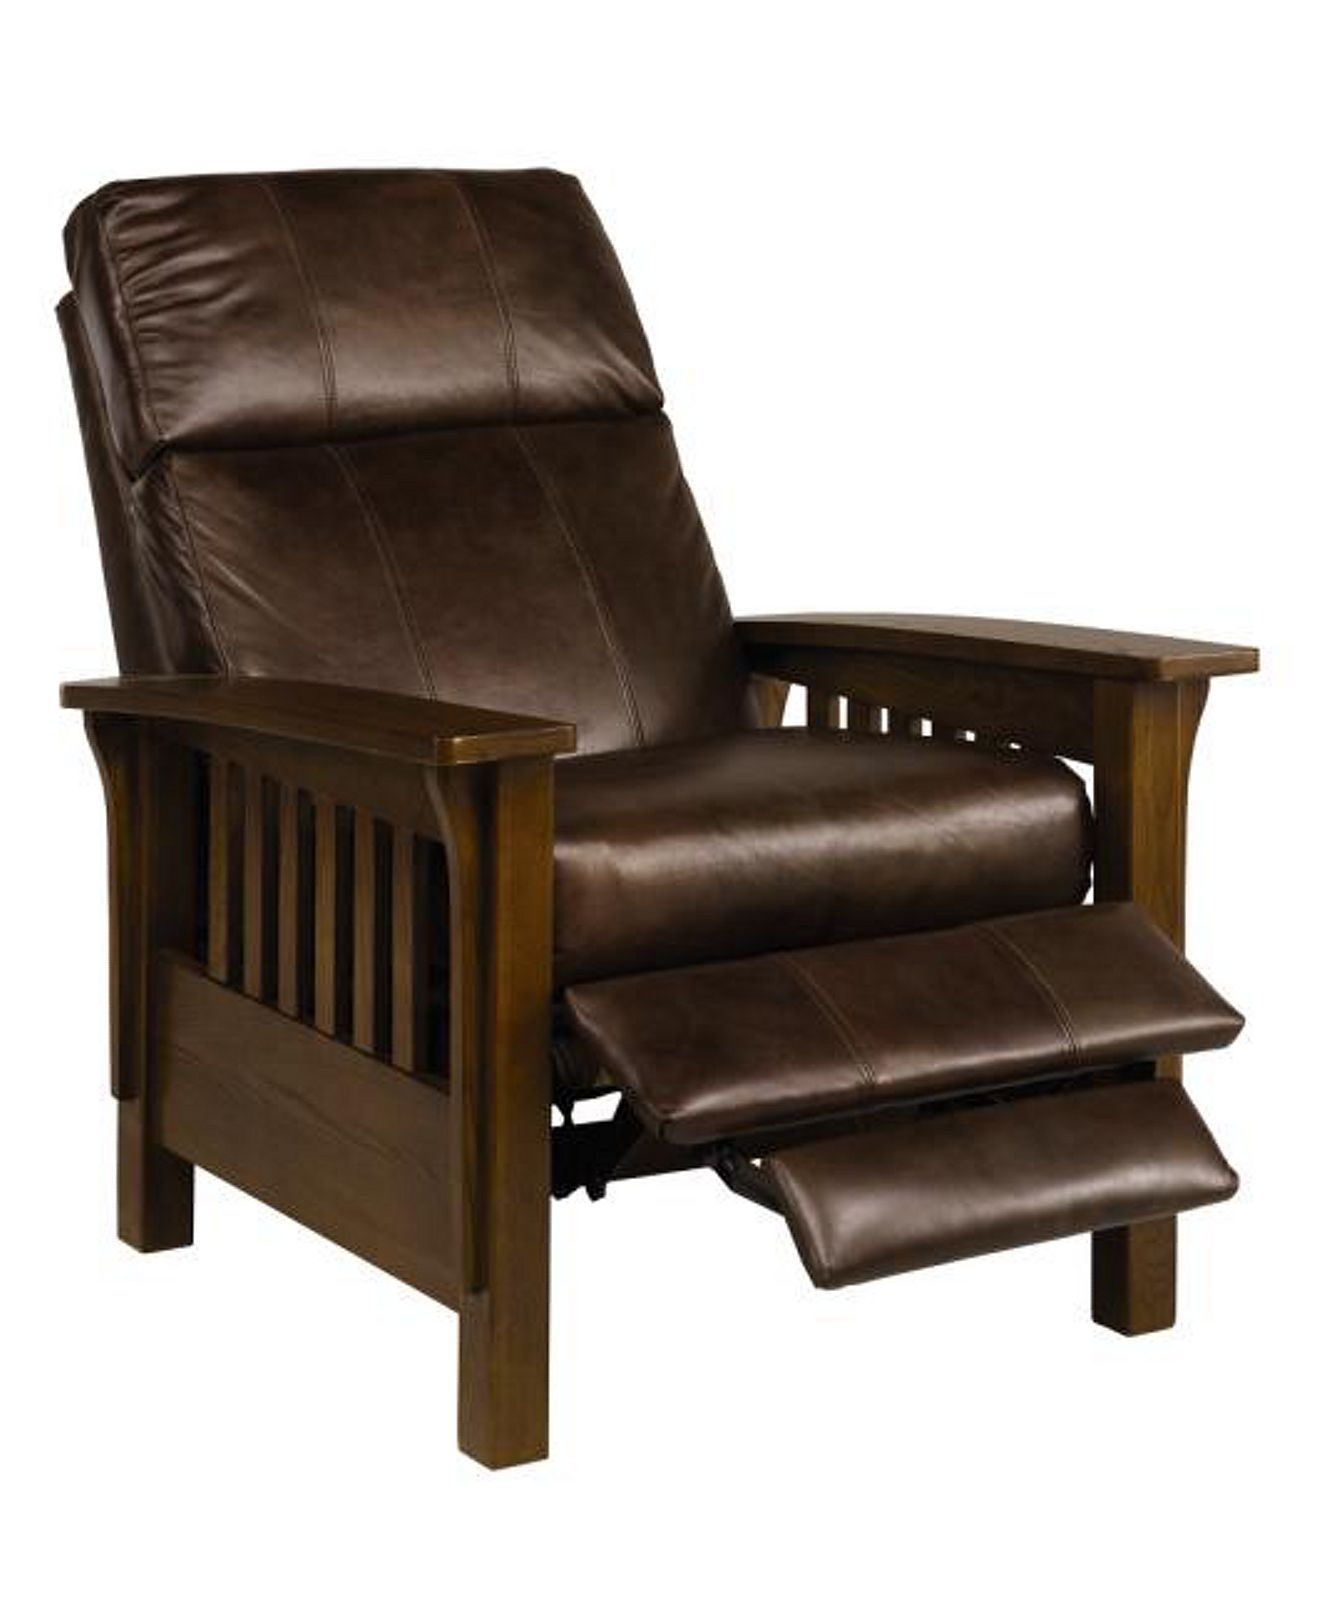 Mission Recliner Chair Plans Wheel Online Price Nicolas Ii Style Leather 33 Quotw X 40